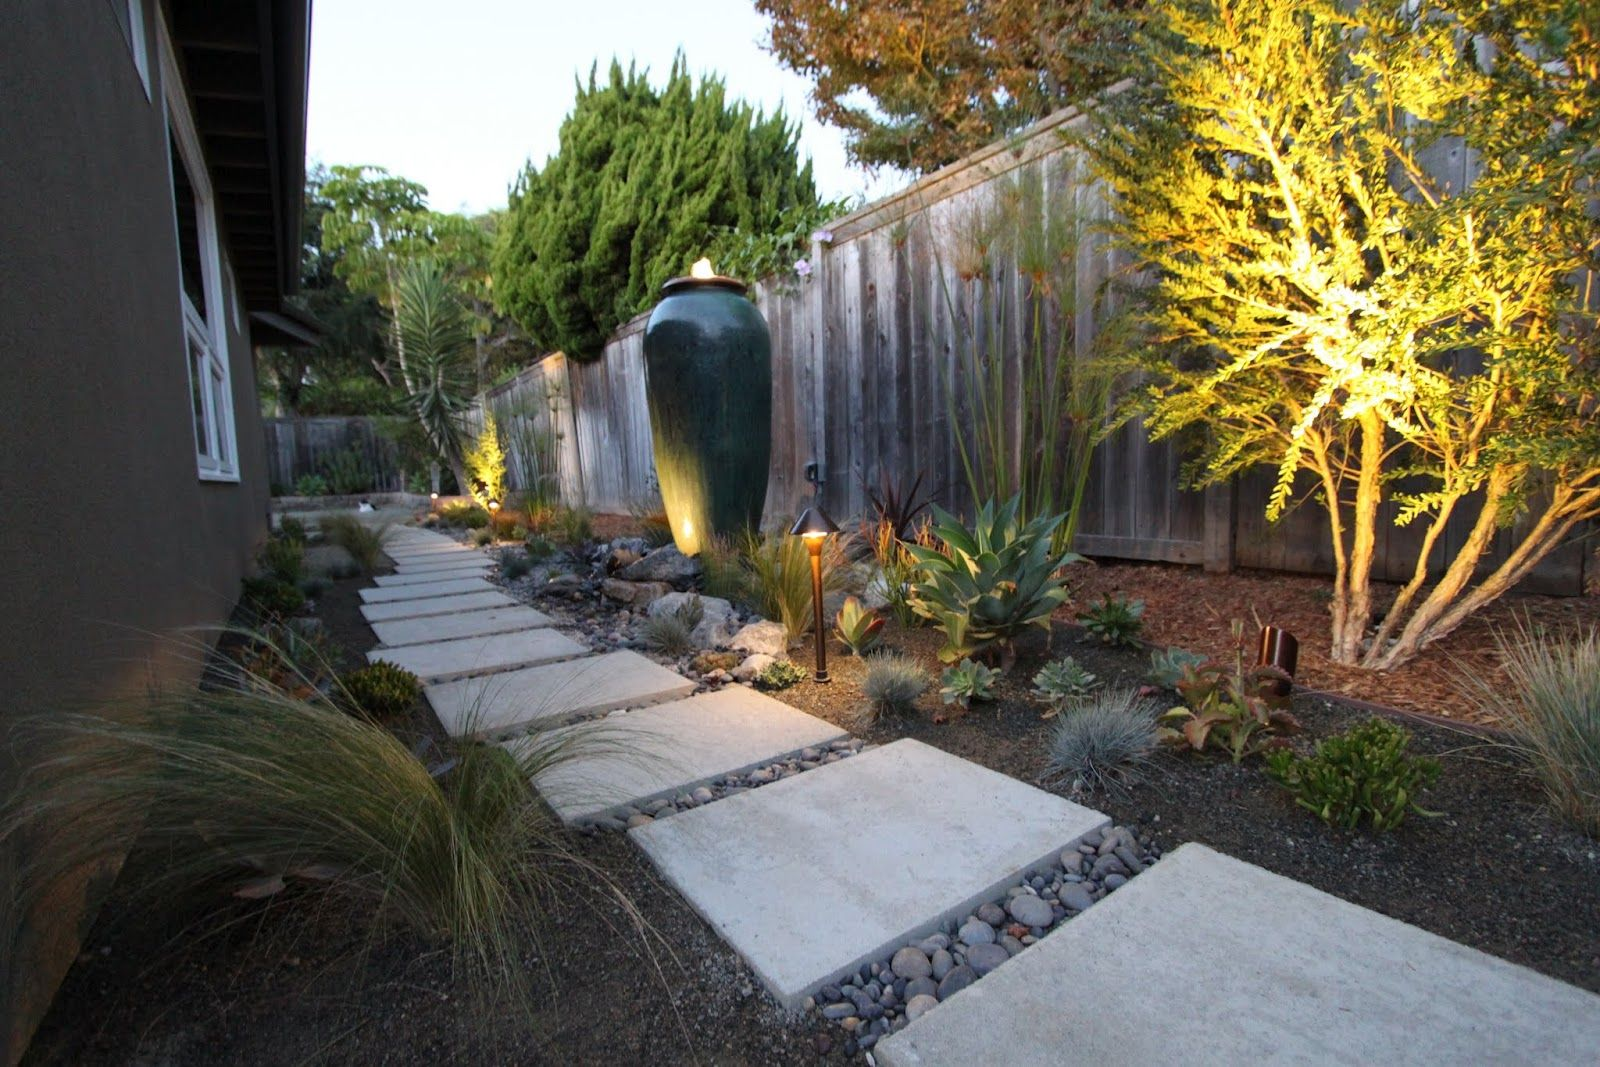 mid century modern backyard ideas lighting a mid century modern landscape design - Mid Century Modern Landscape Design Ideas